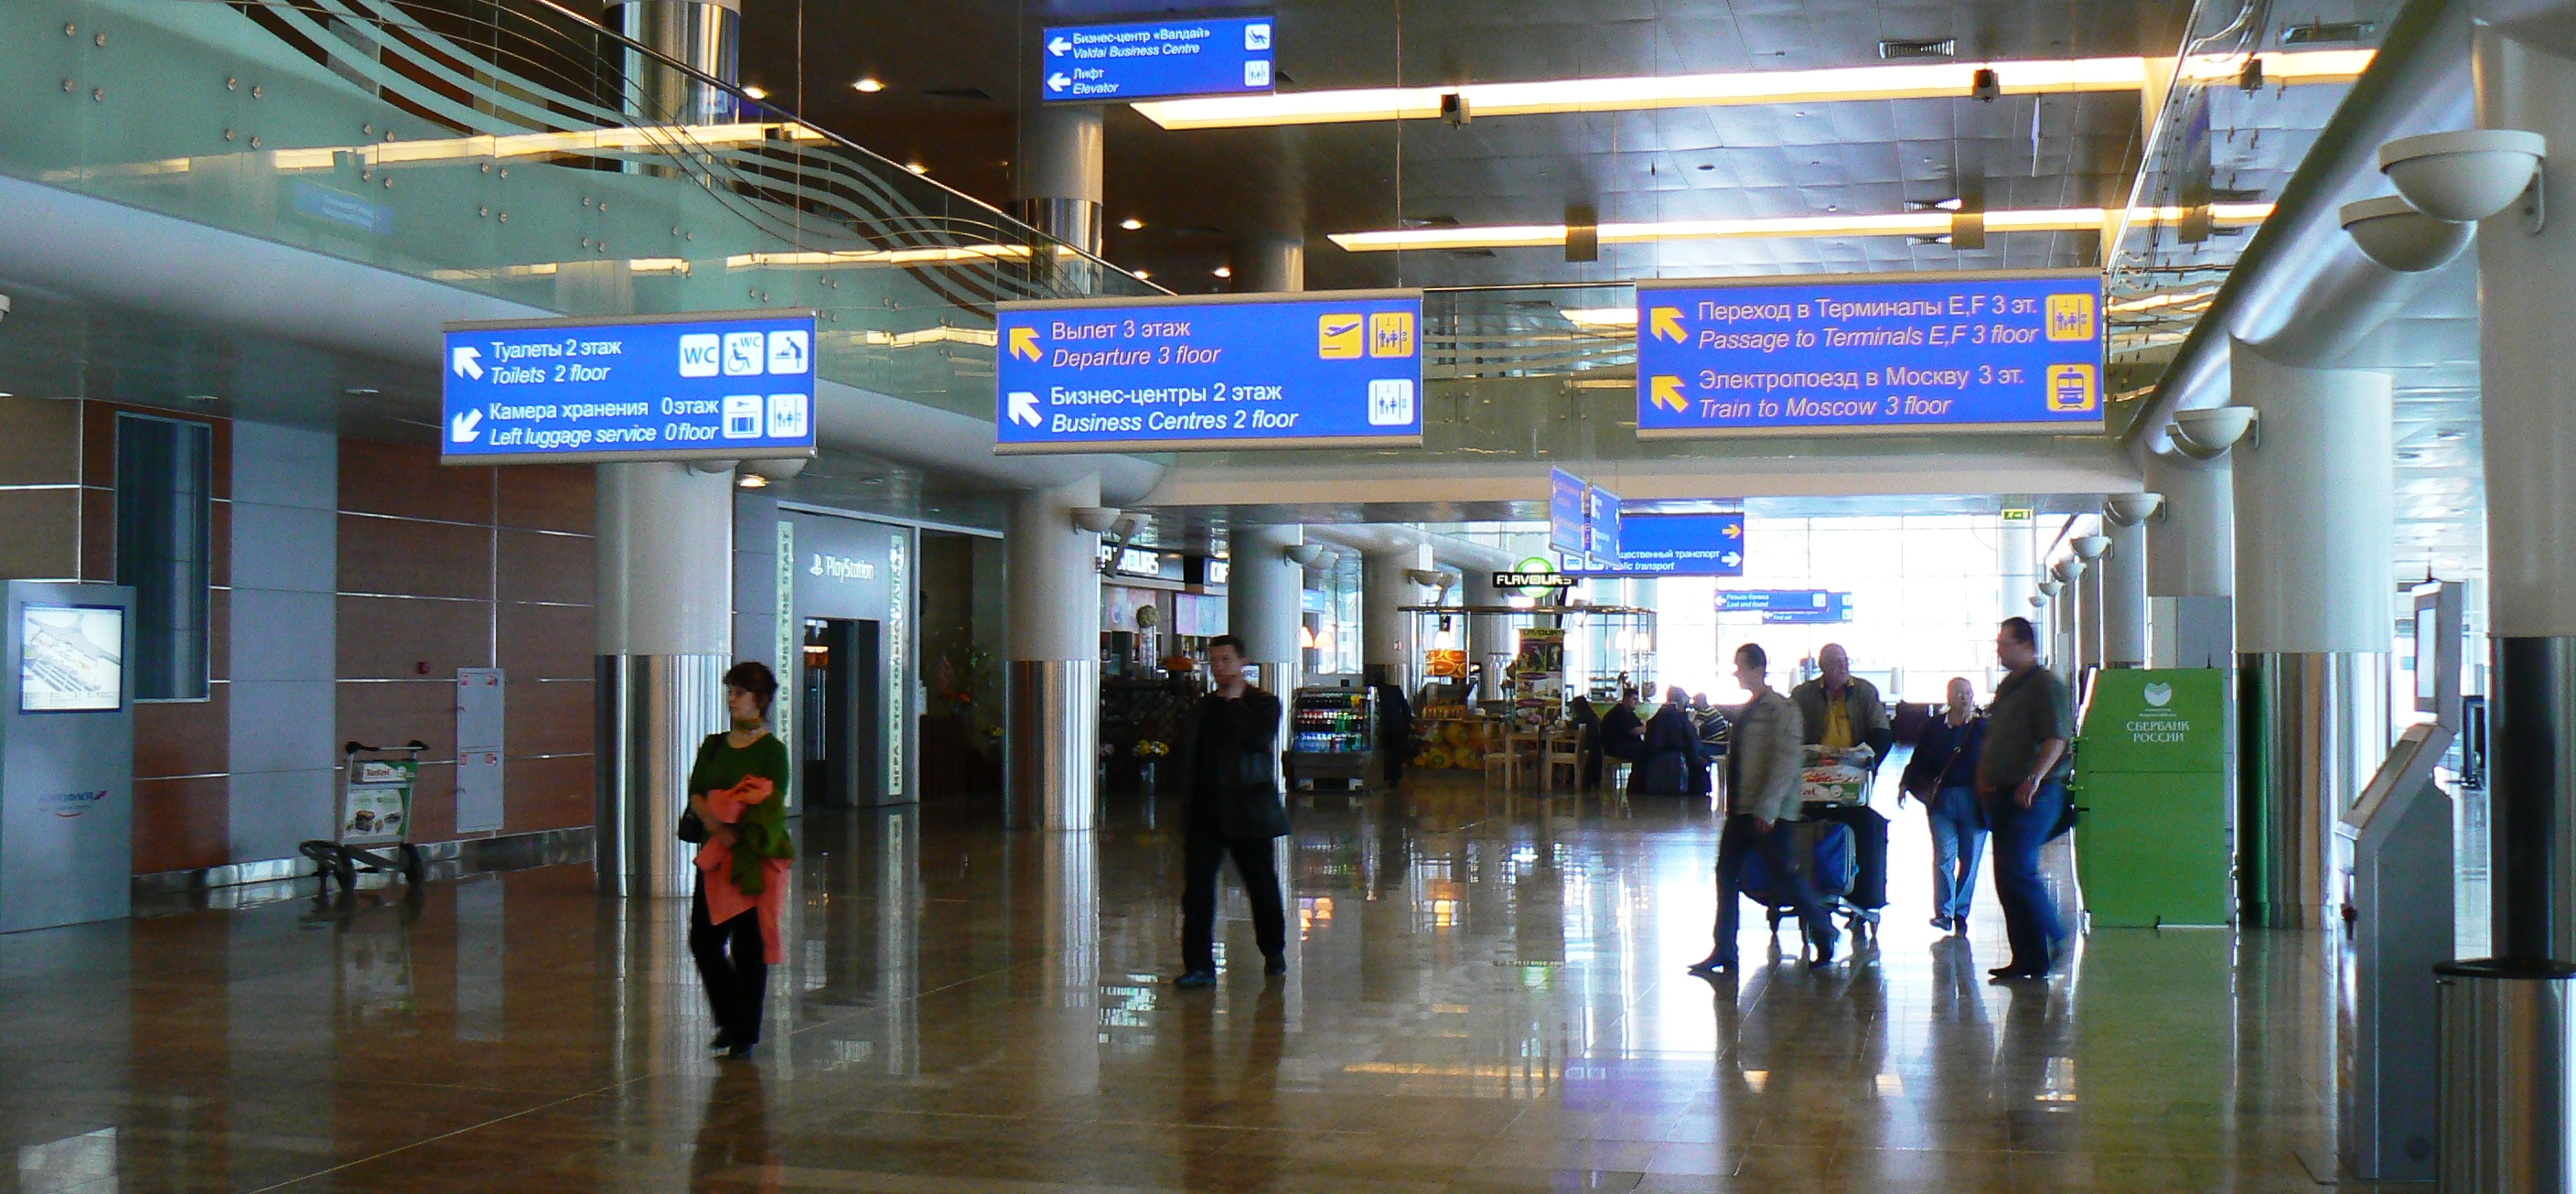 Moscow-Shermeetevo-free-duty-shops-and-terminal-D-red-cooridor-signatures